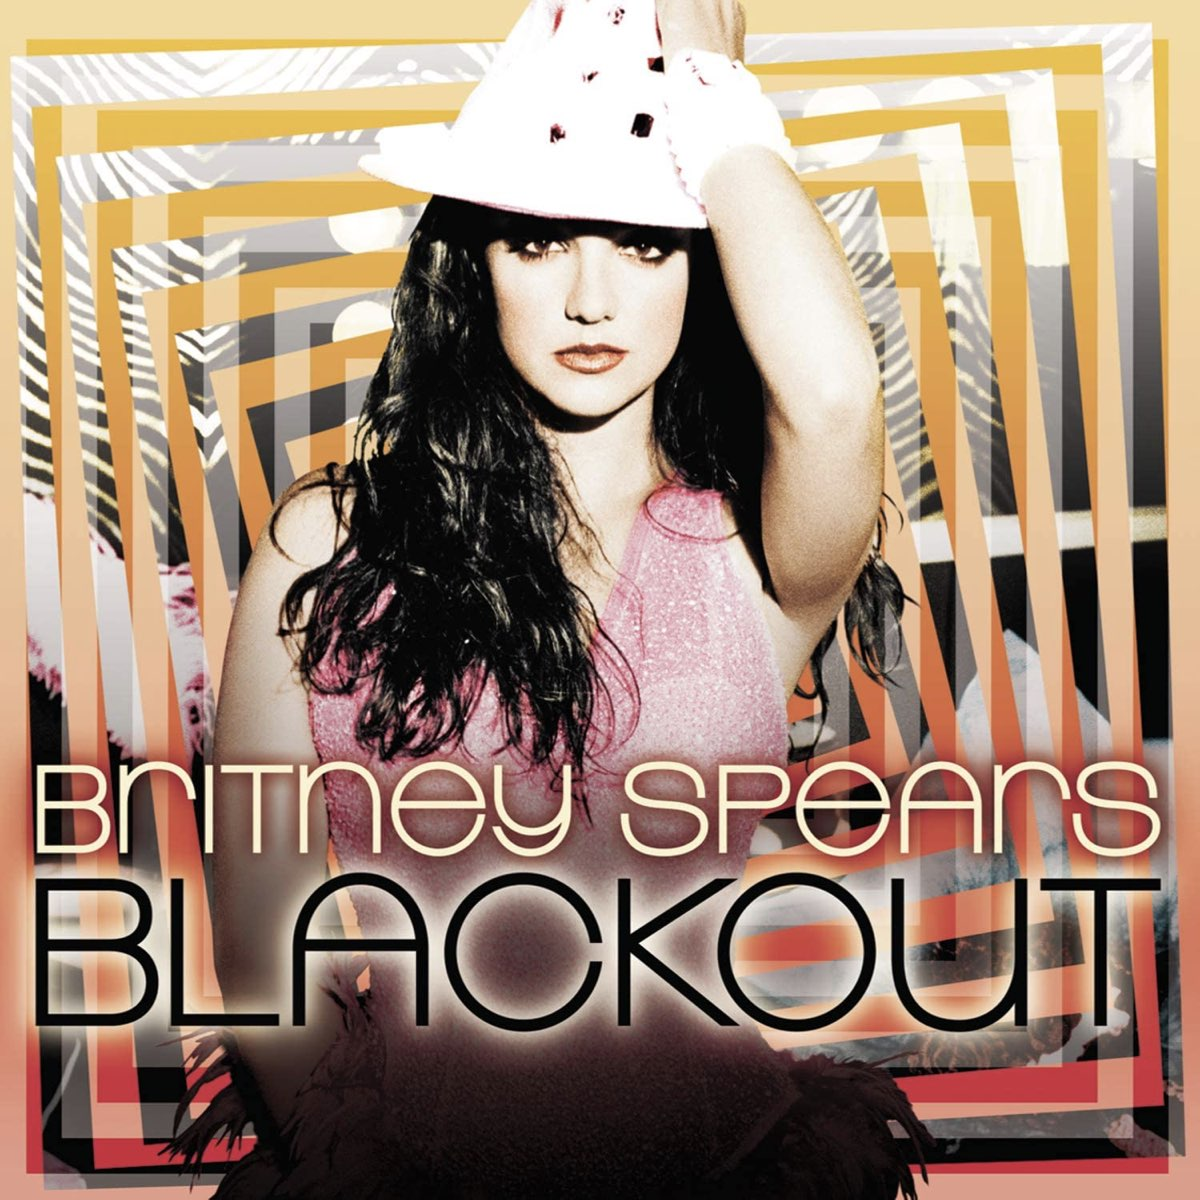 Britney Spears - Blackout [Urban Outfitters]